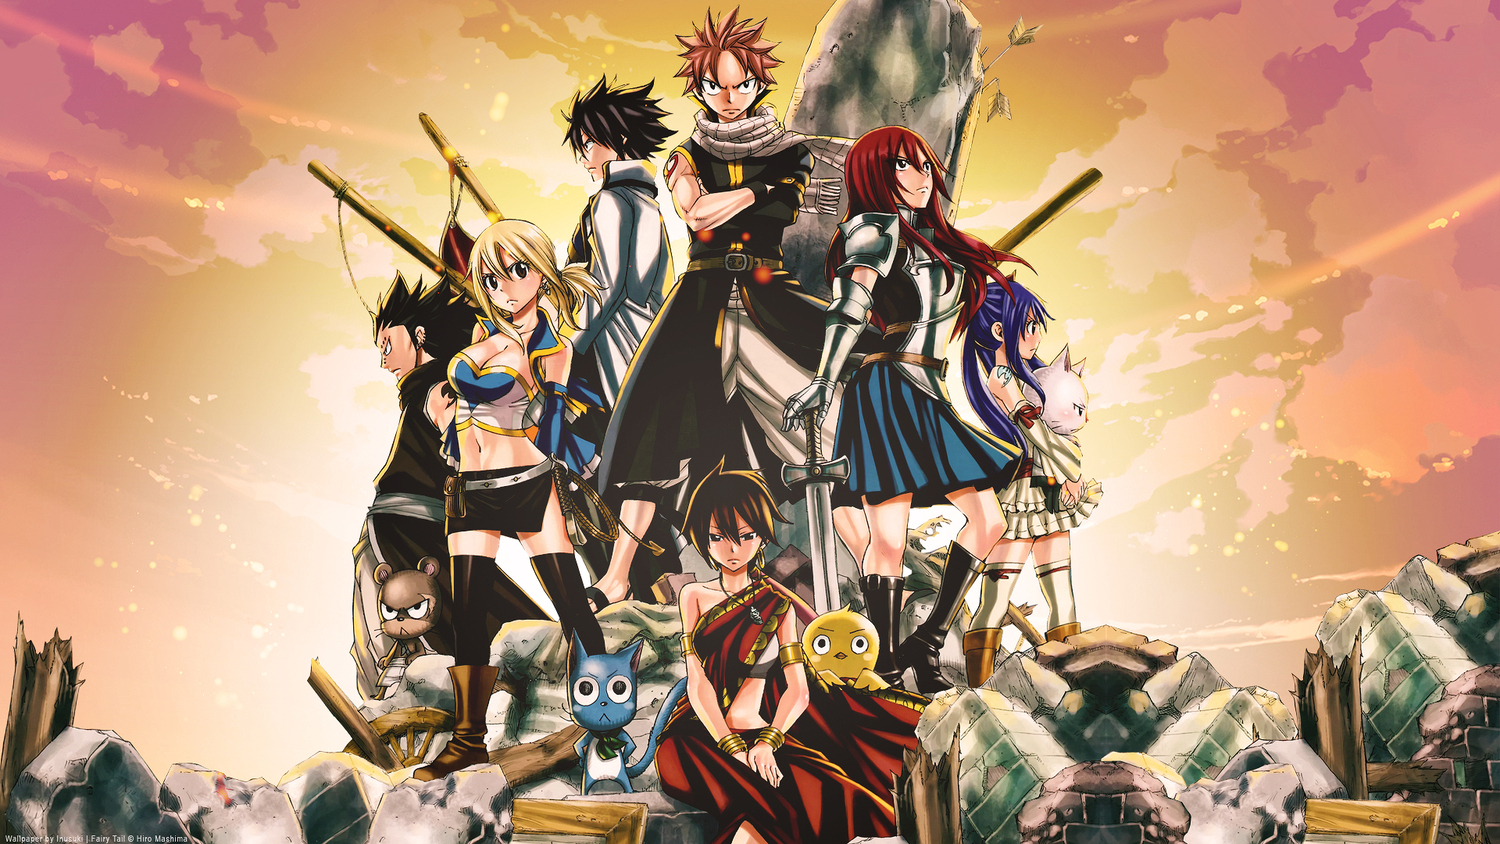 Fairy Tail Wallpapers HD #5902 Wallpaper